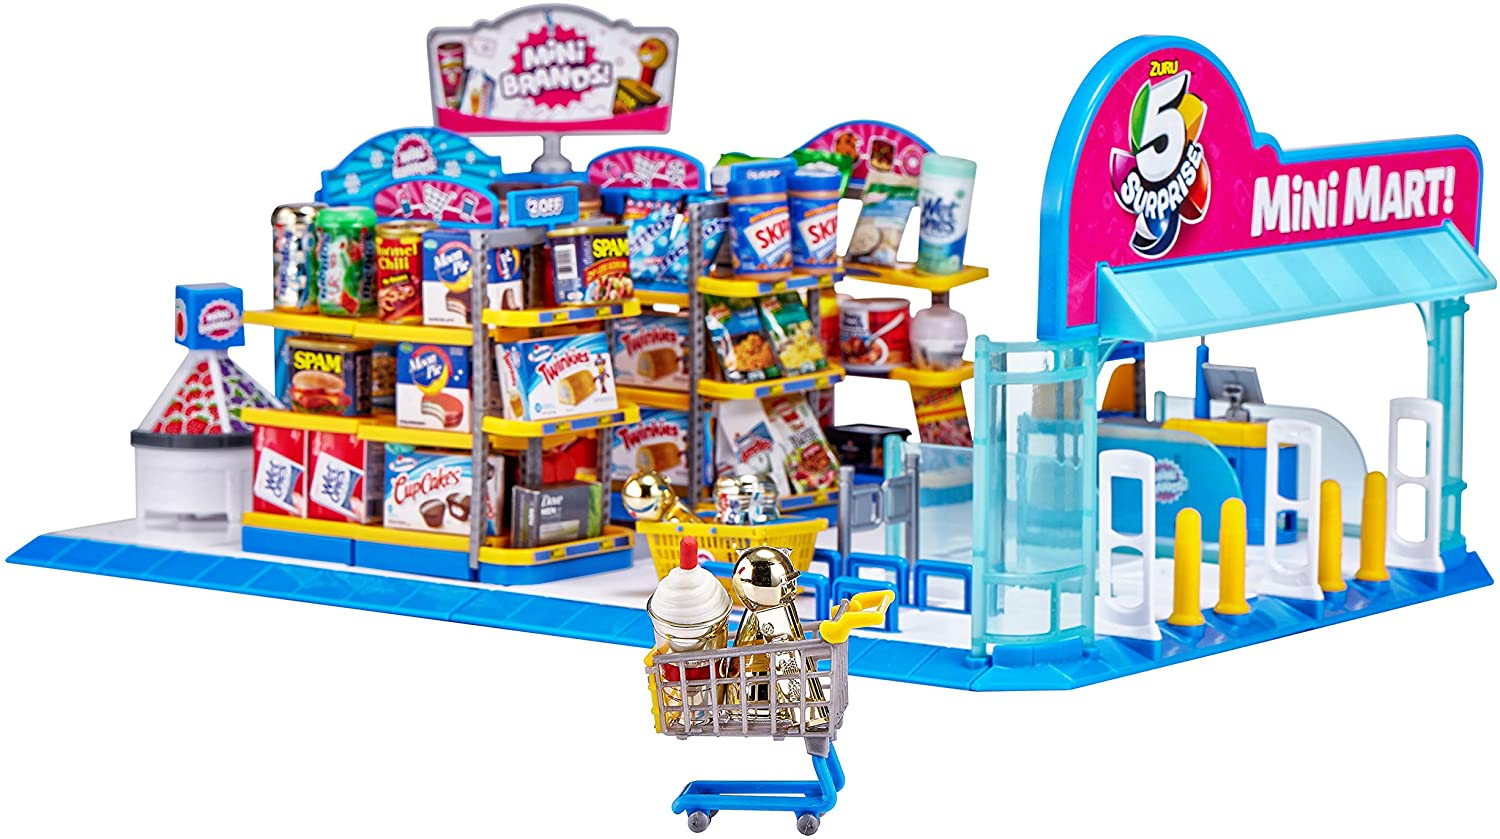 ZURU 5 SURPRISE 77108 Electronic Mart with 4 Mystery Mini Brands Playset